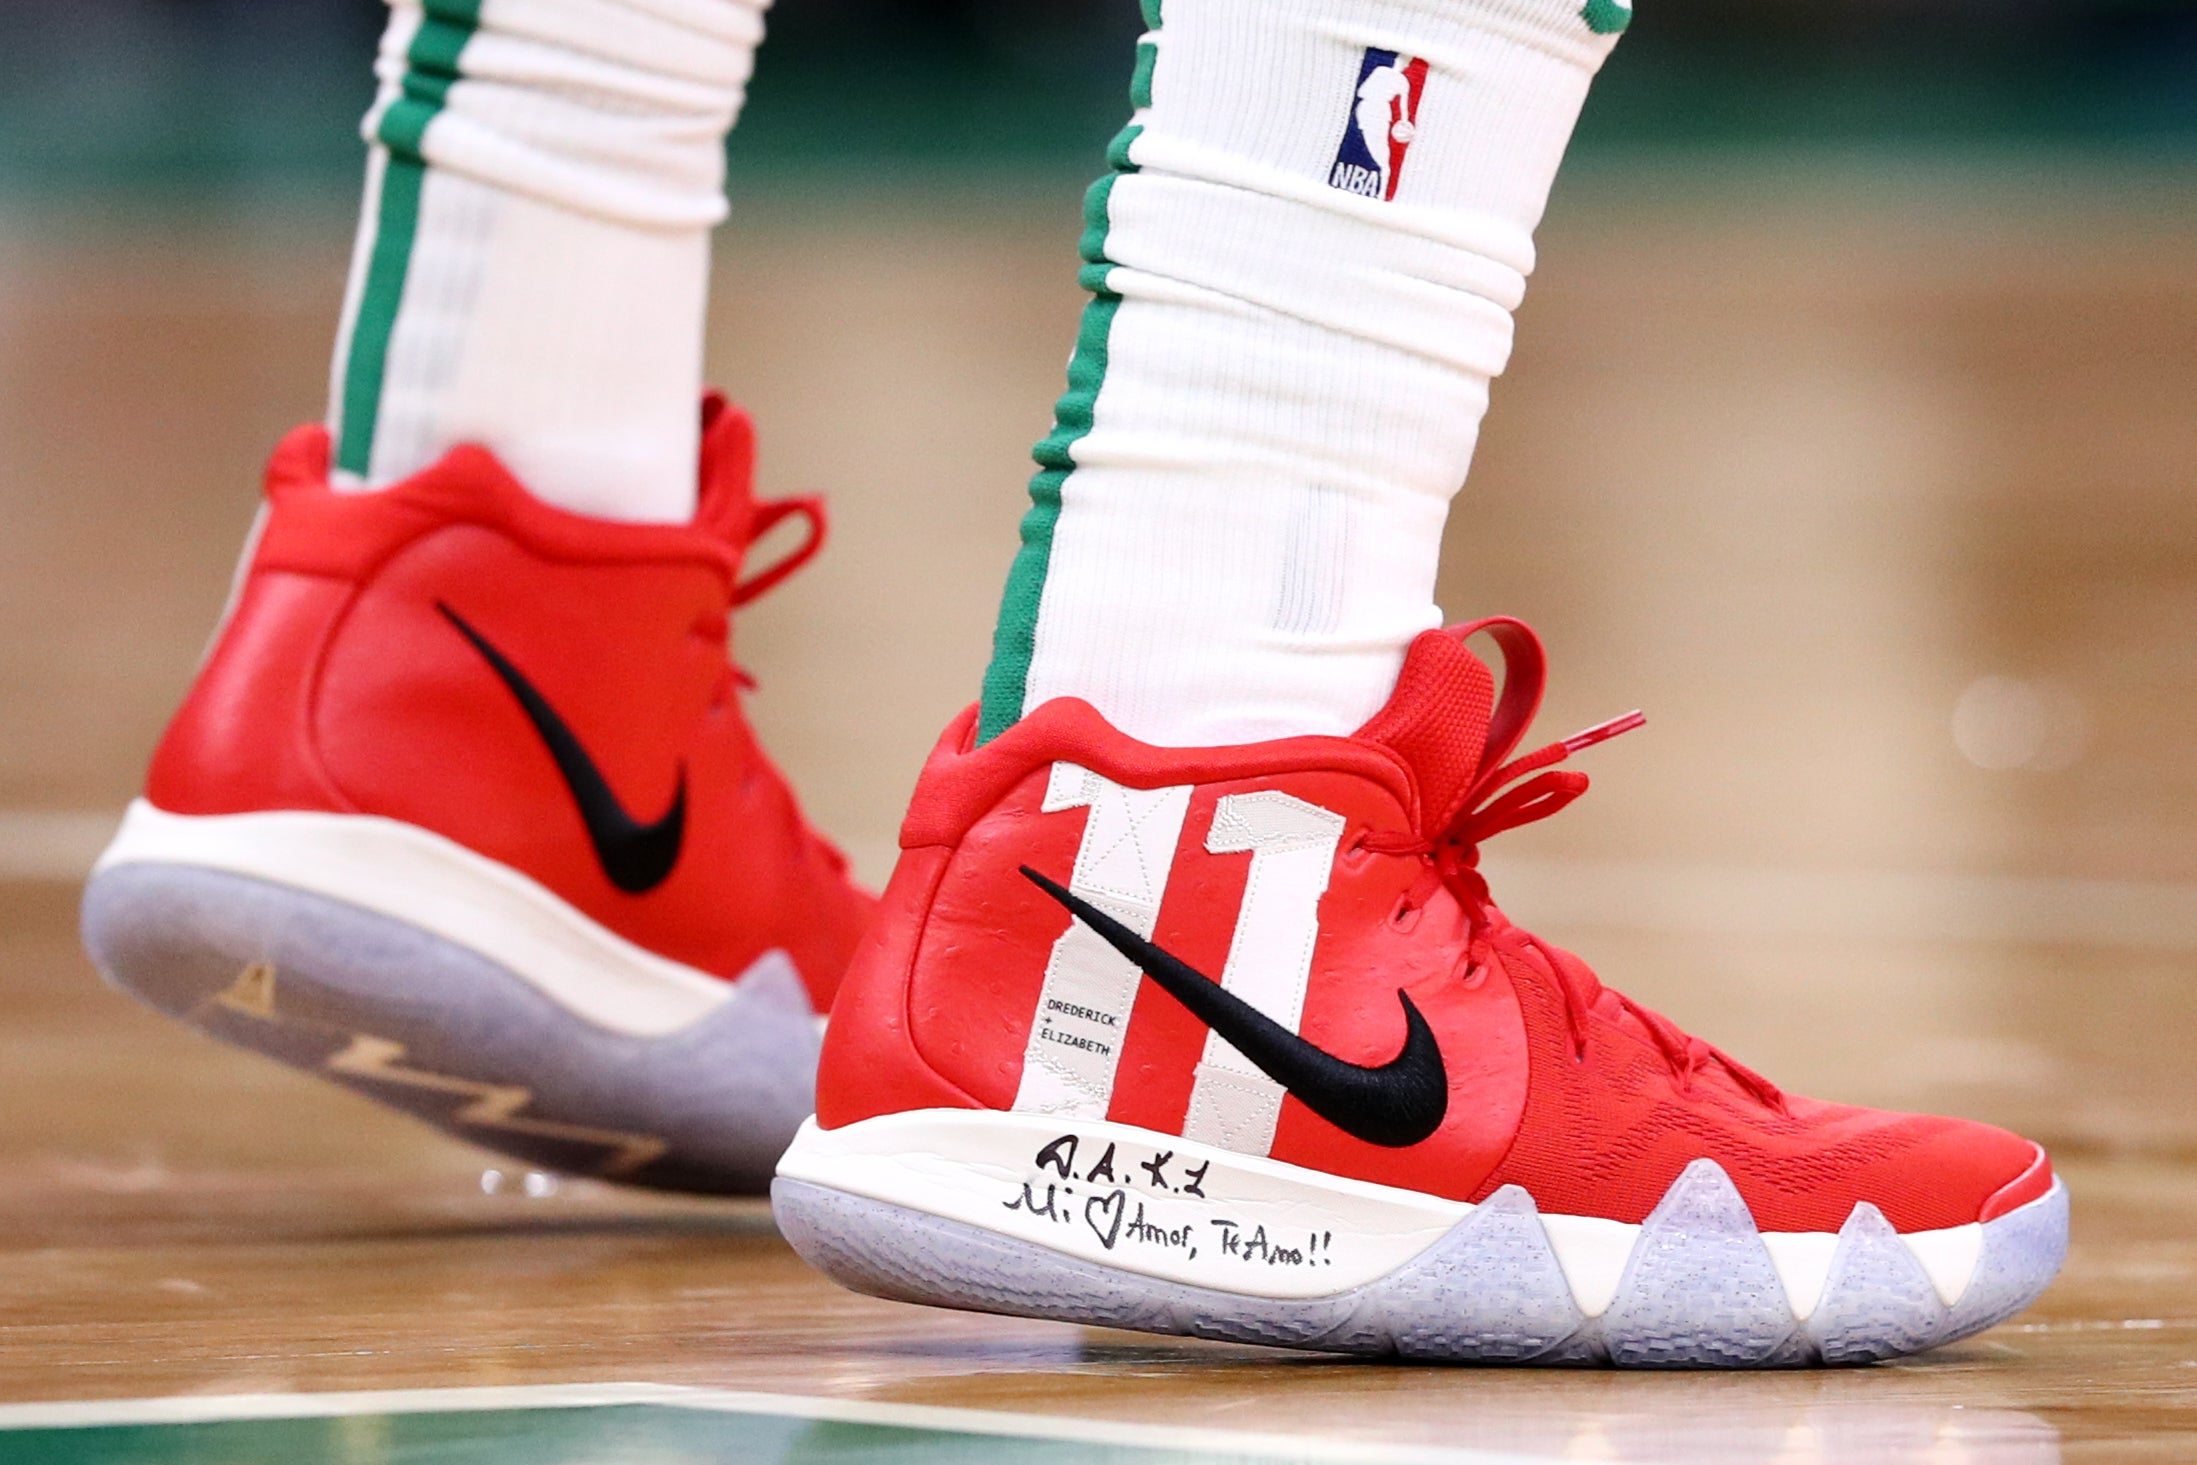 kyrie irving's shoes